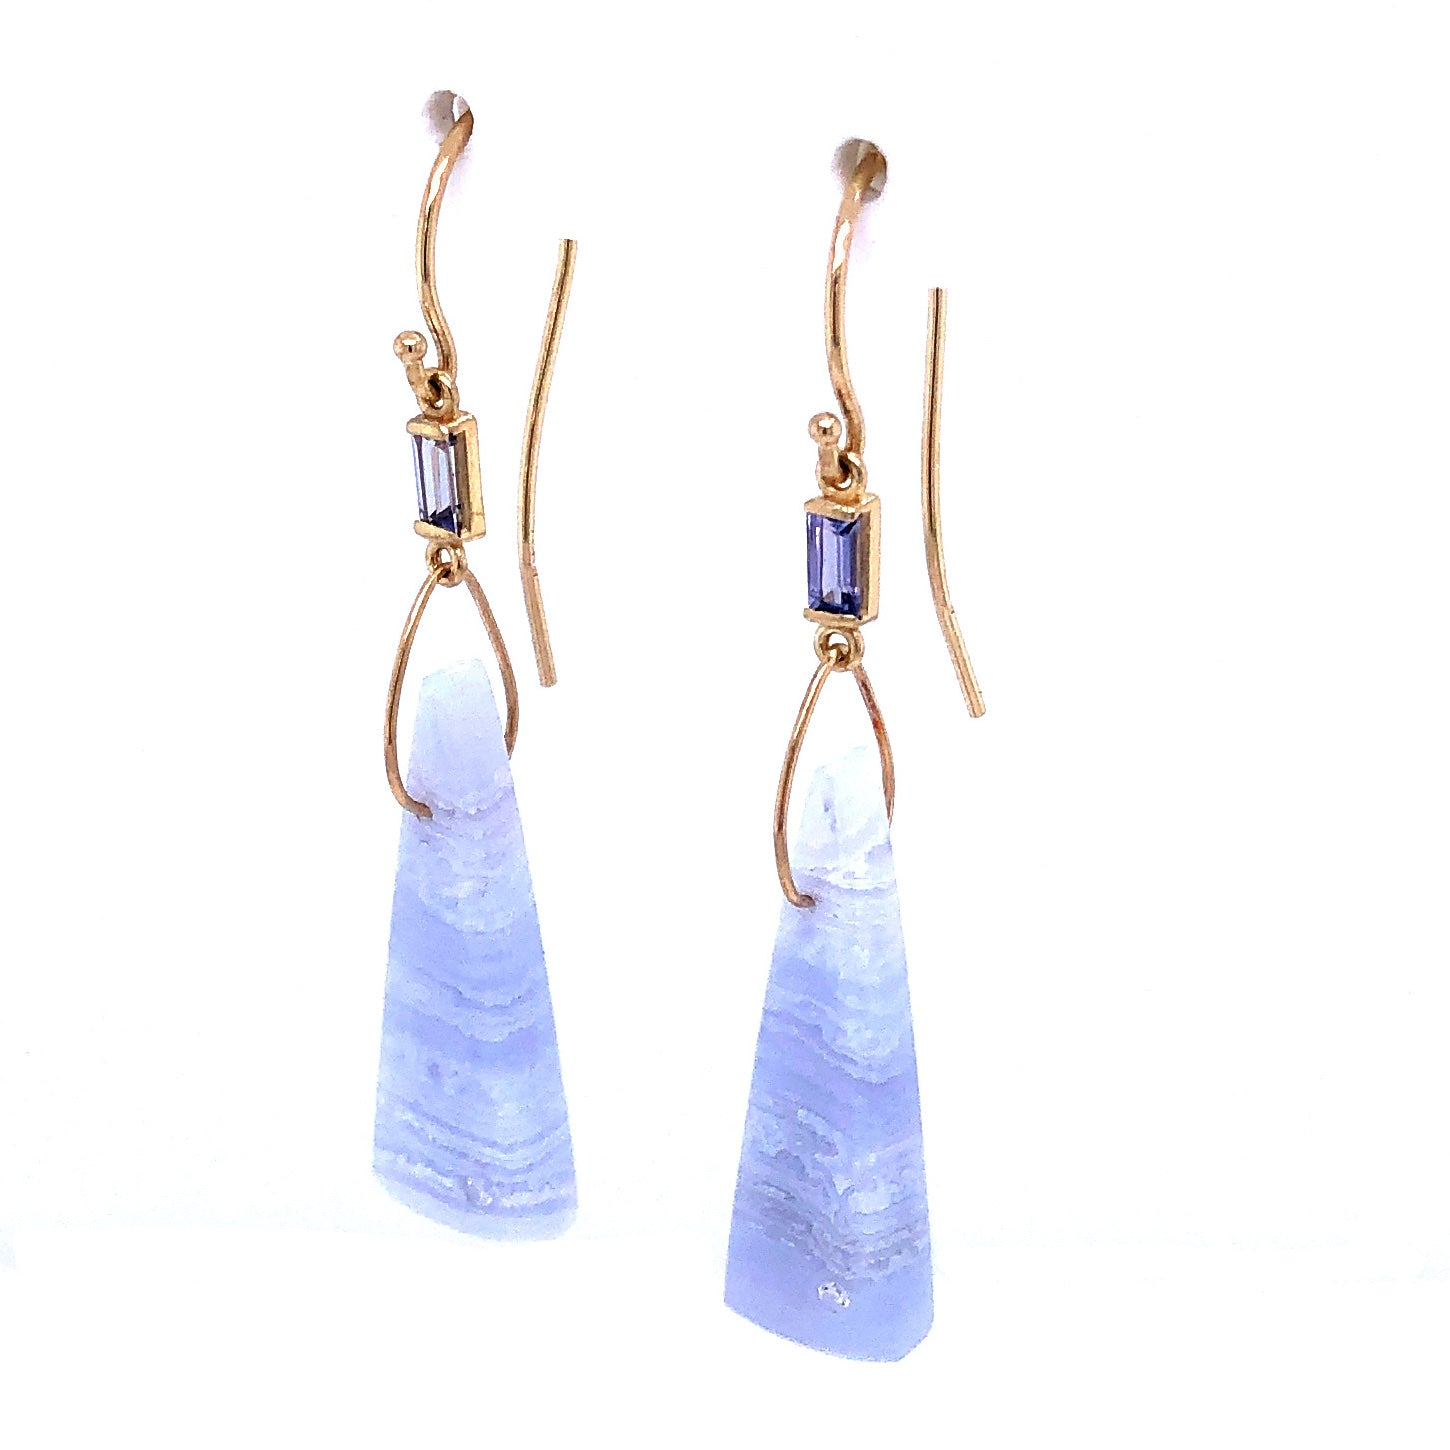 Tanzanite, Blue Lace Agate, and Diamond Earrings, Handmade in 14k Gold